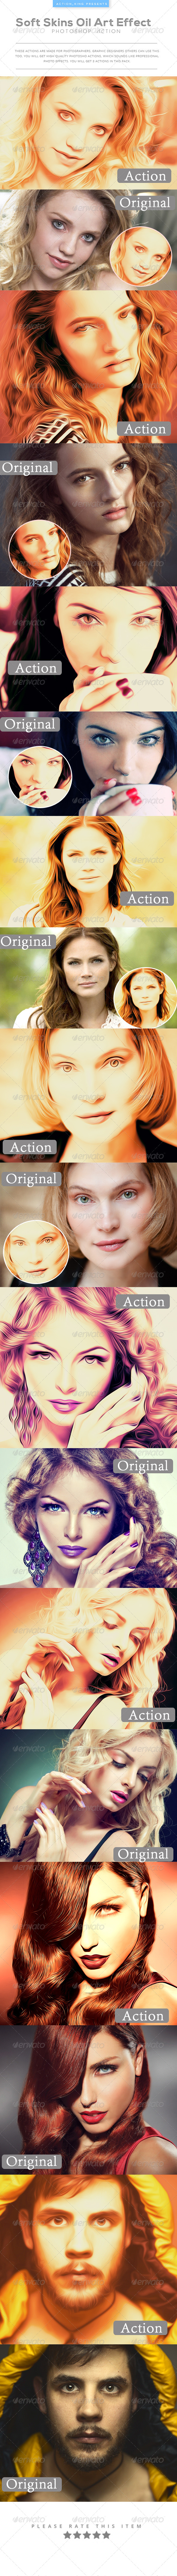 GraphicRiver Soft Skins Oil Art Effect 8466969